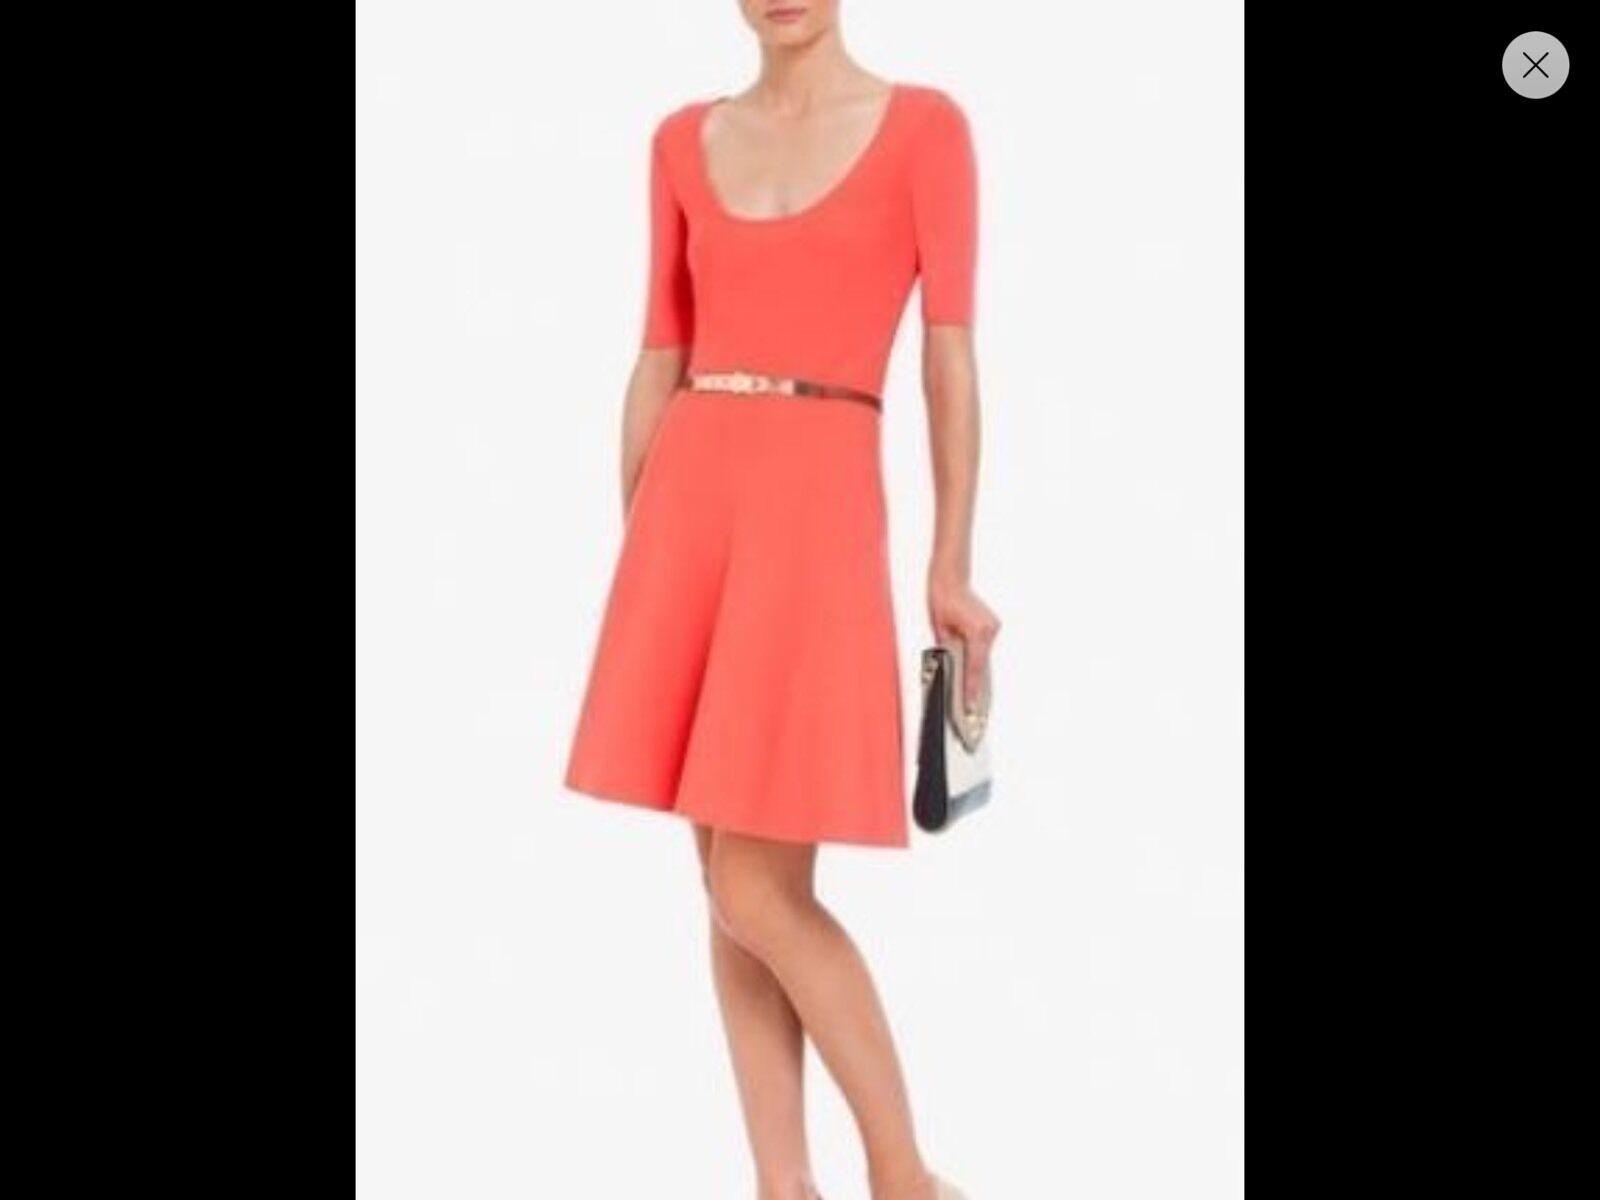 298 NWT BCBG MAXAZRIA MADISYN CORAL A-LINE KNIT DRESS L   LARGE